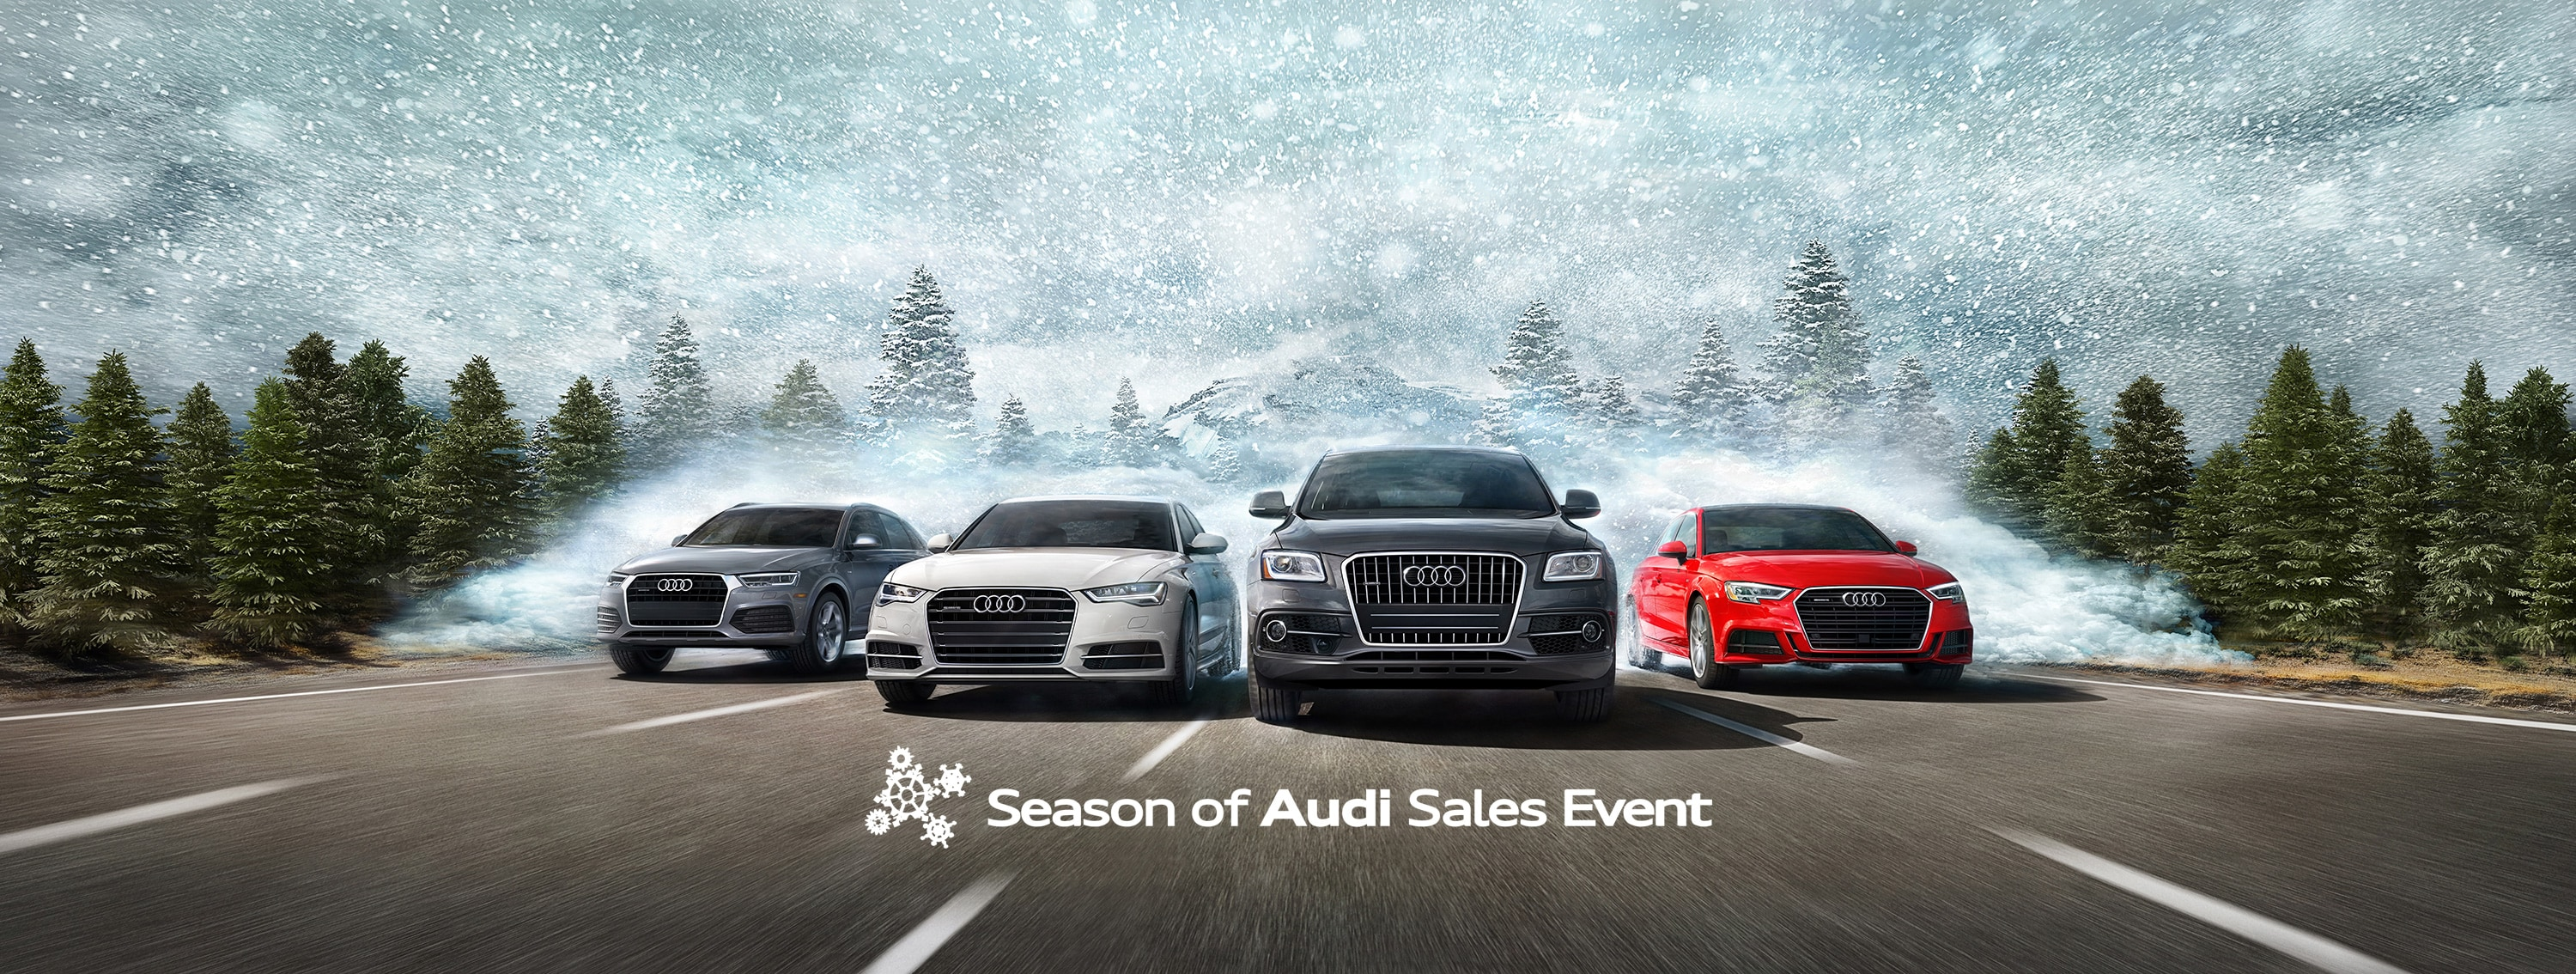 kent used quattro sale for tiptronic cars audi classifieds sales in event